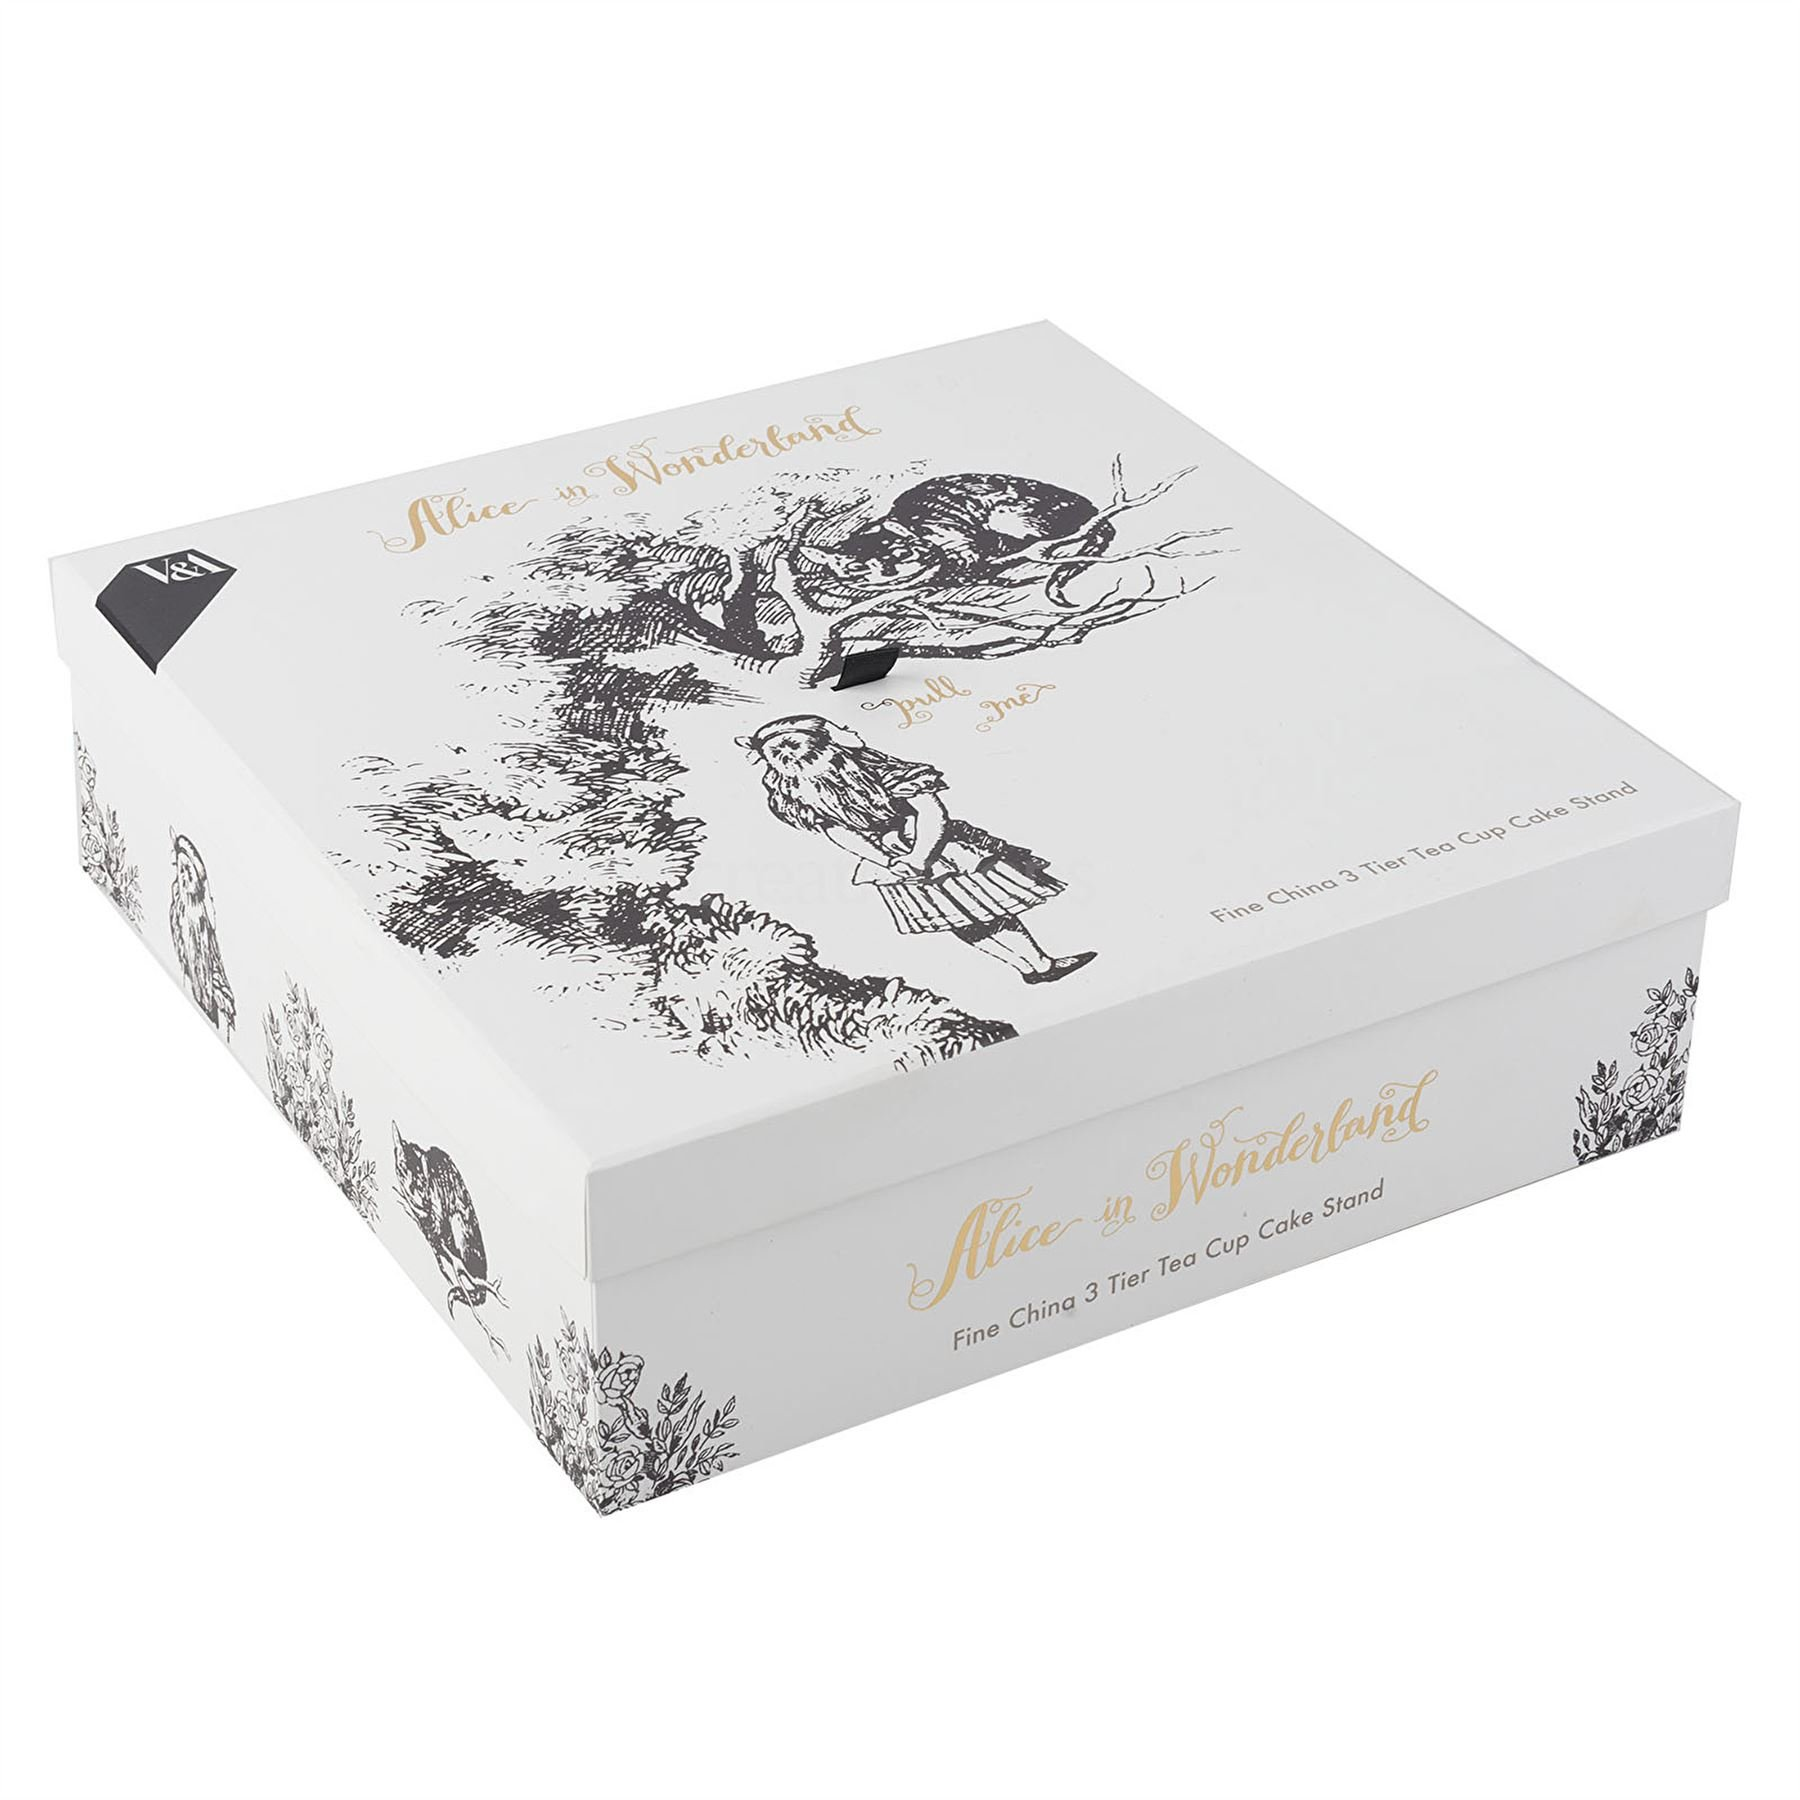 Creative Tops V&A Alice in Wonderland 3 Tier China Teacup Cake Stand Gift Boxed by CreativeTops (Image #2)